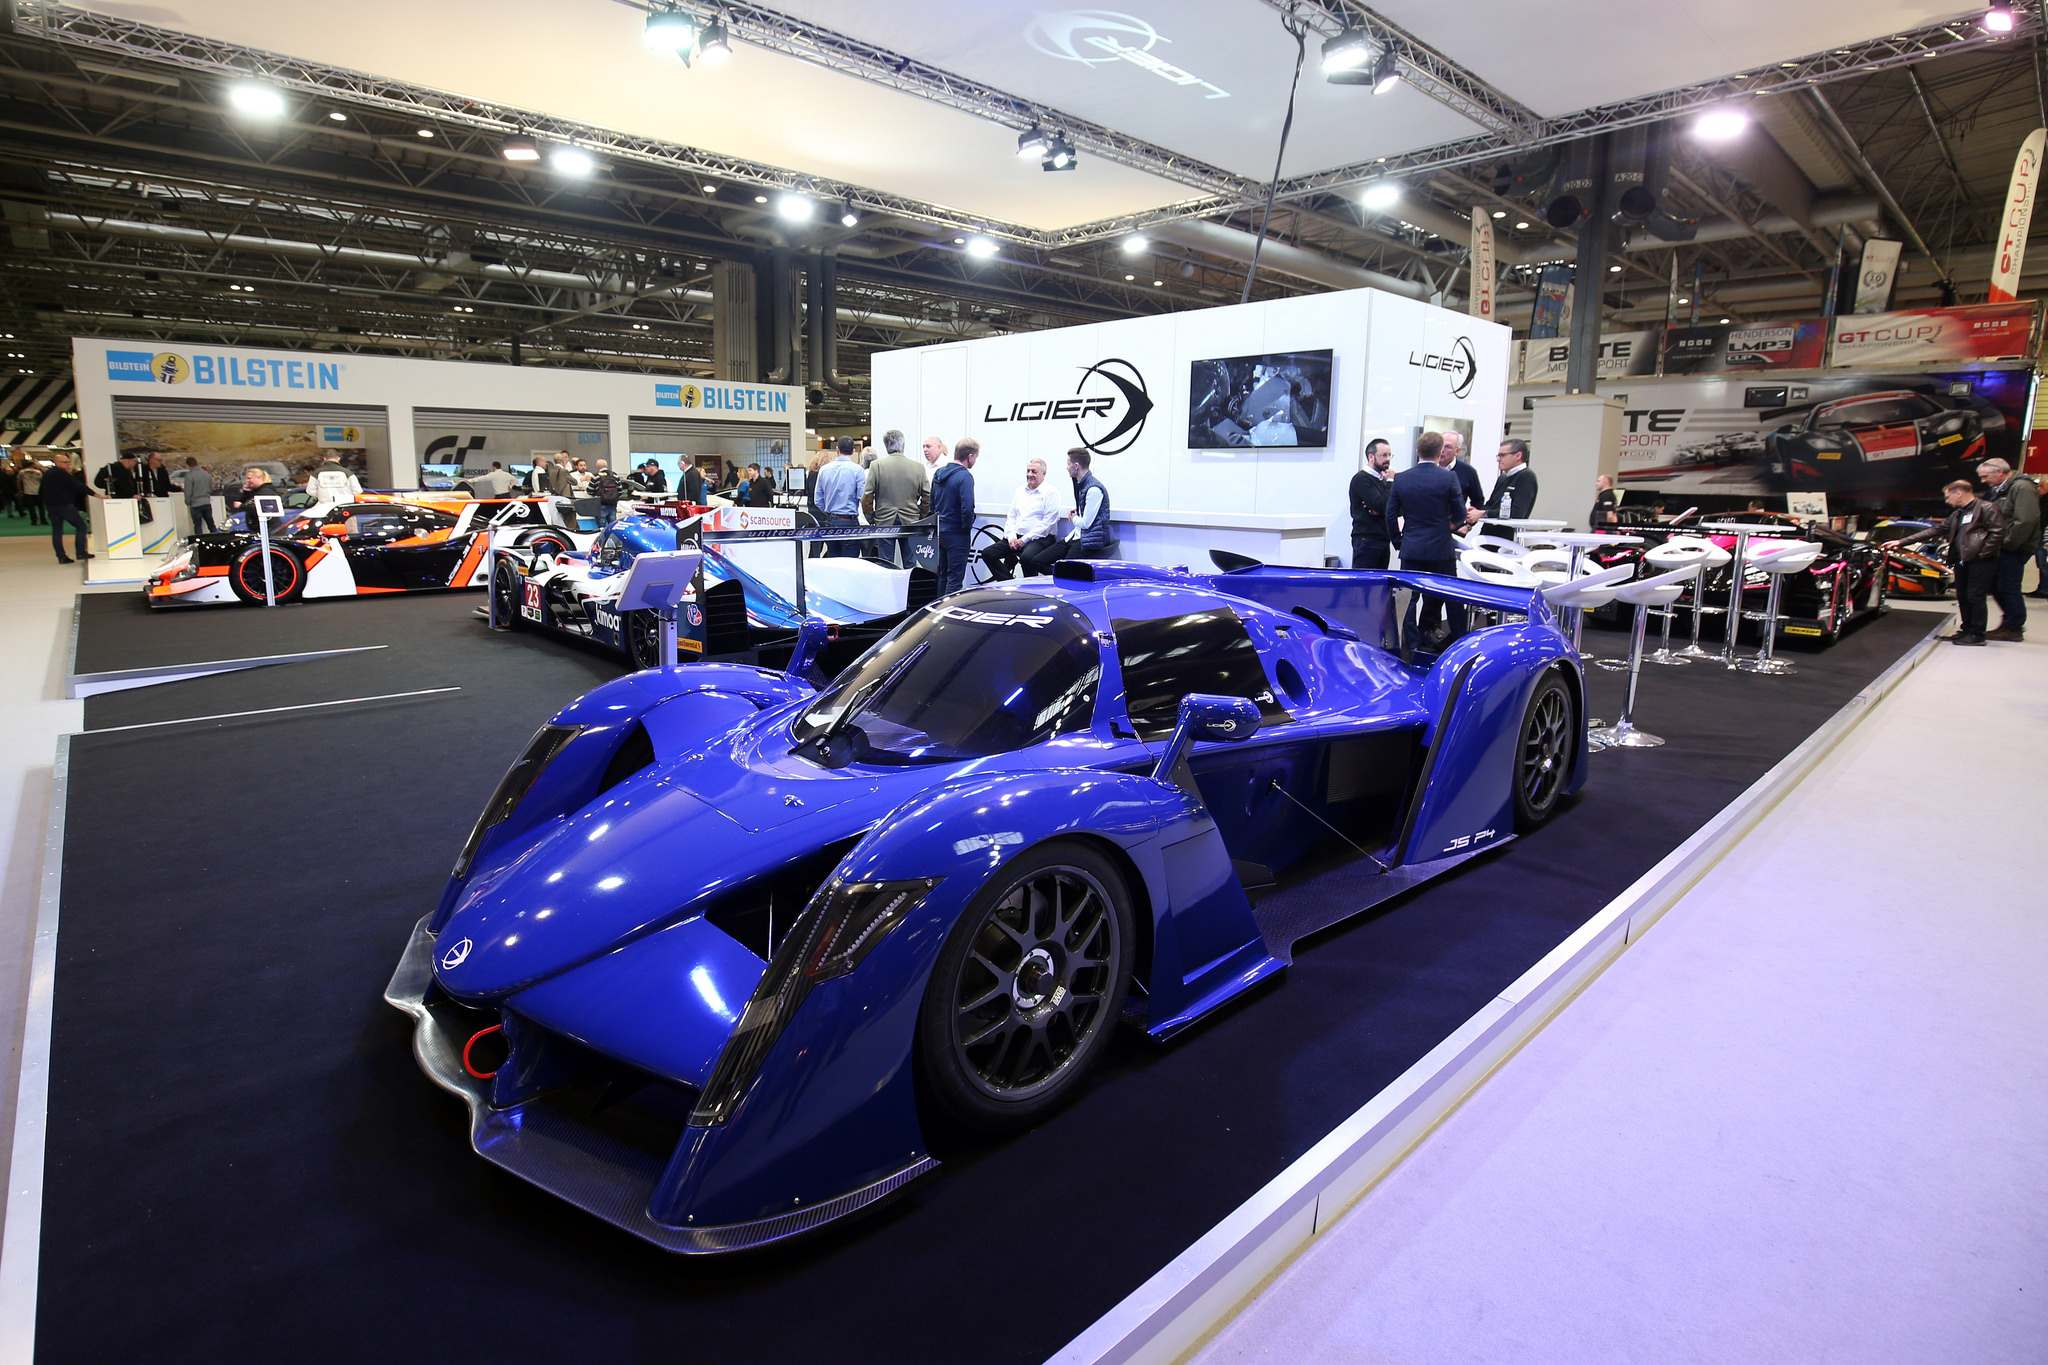 ligier 20187 Ligier at Autosport International Show 2018